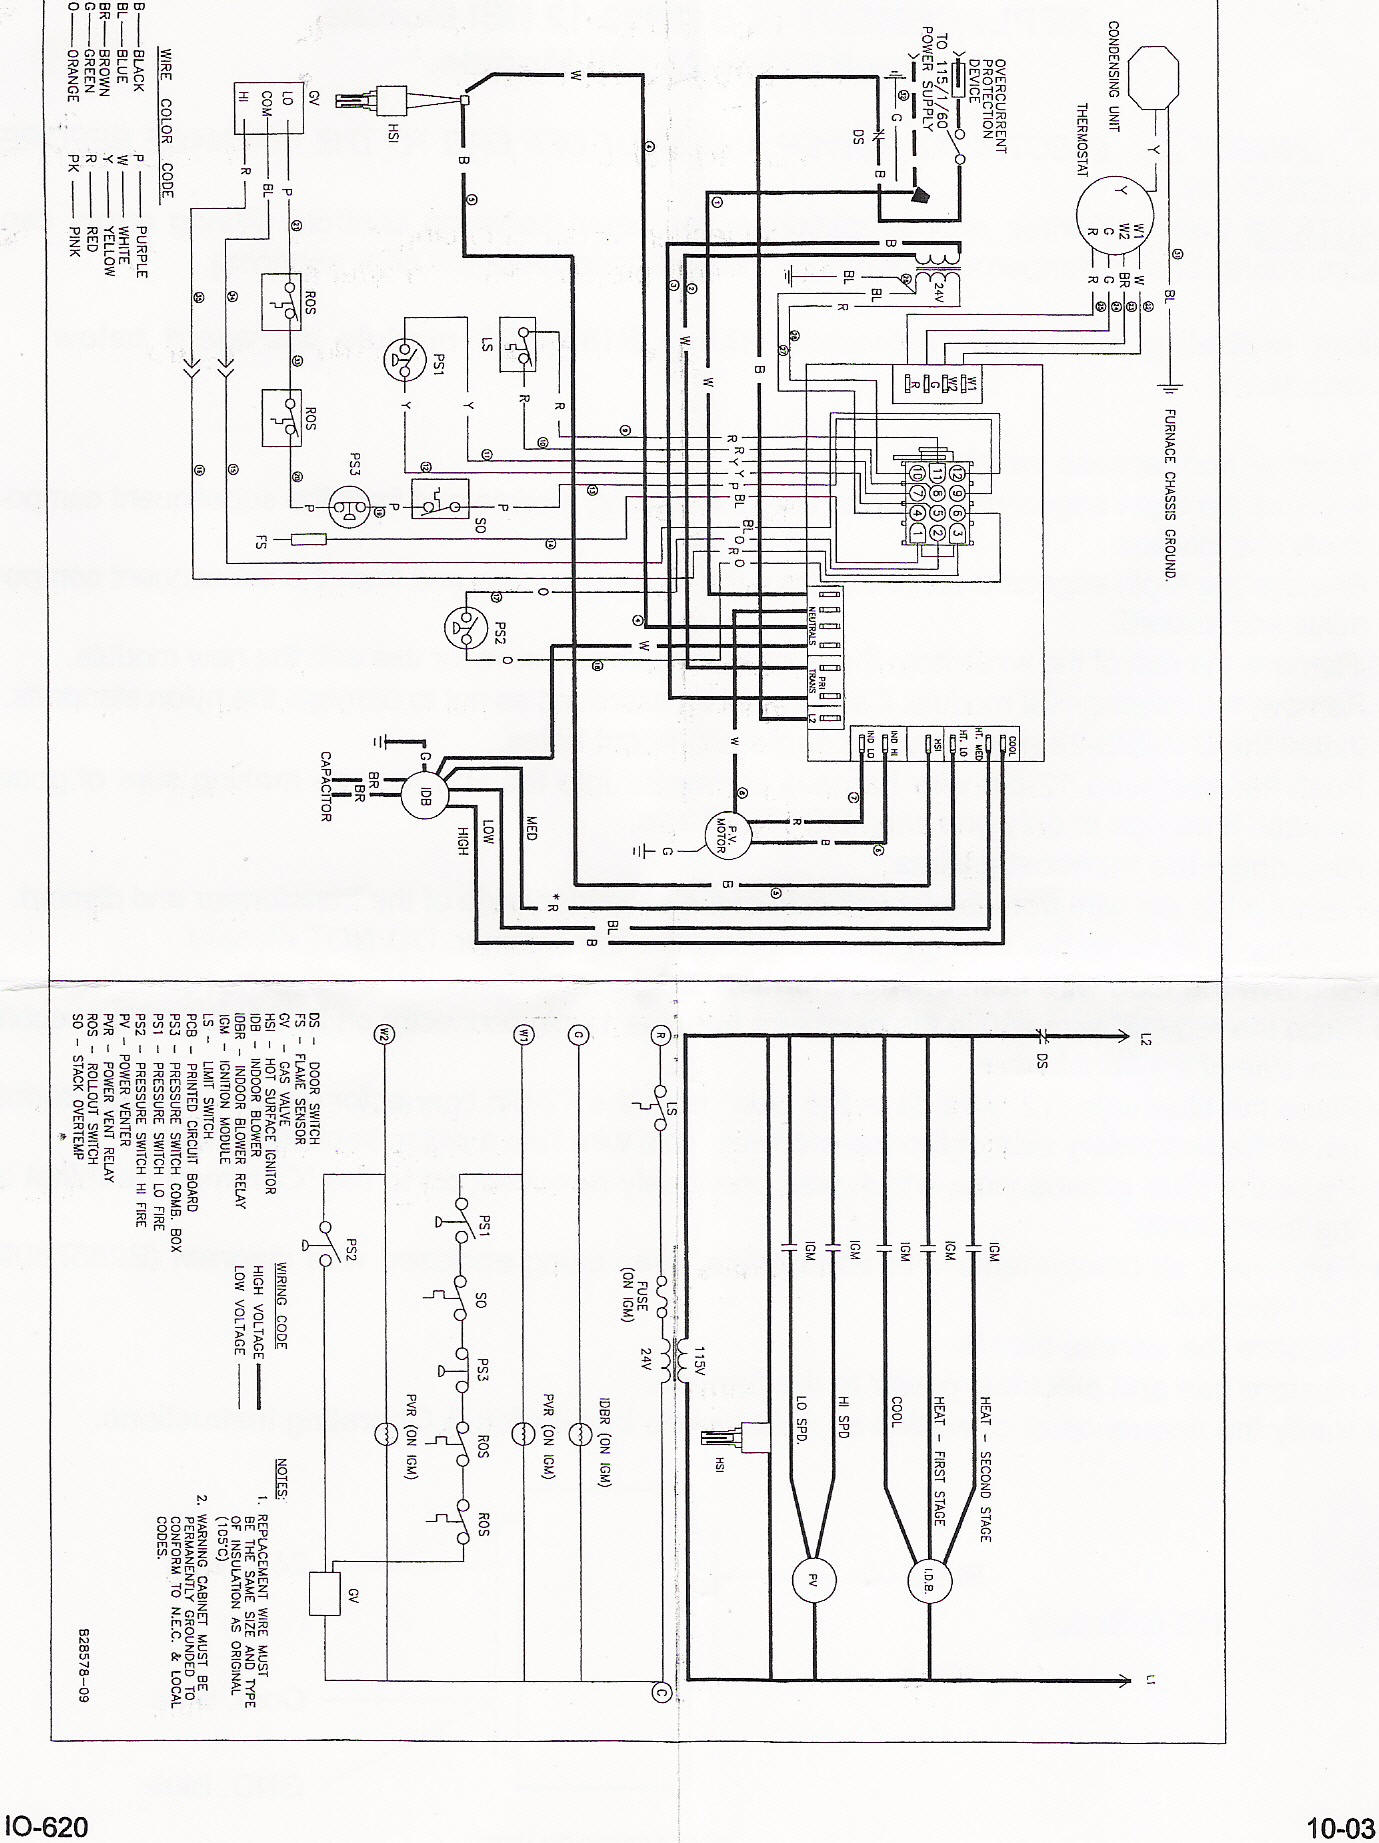 goodma2 instr goodman control board b18099 23 instructions Basic Electrical Wiring Diagrams at soozxer.org